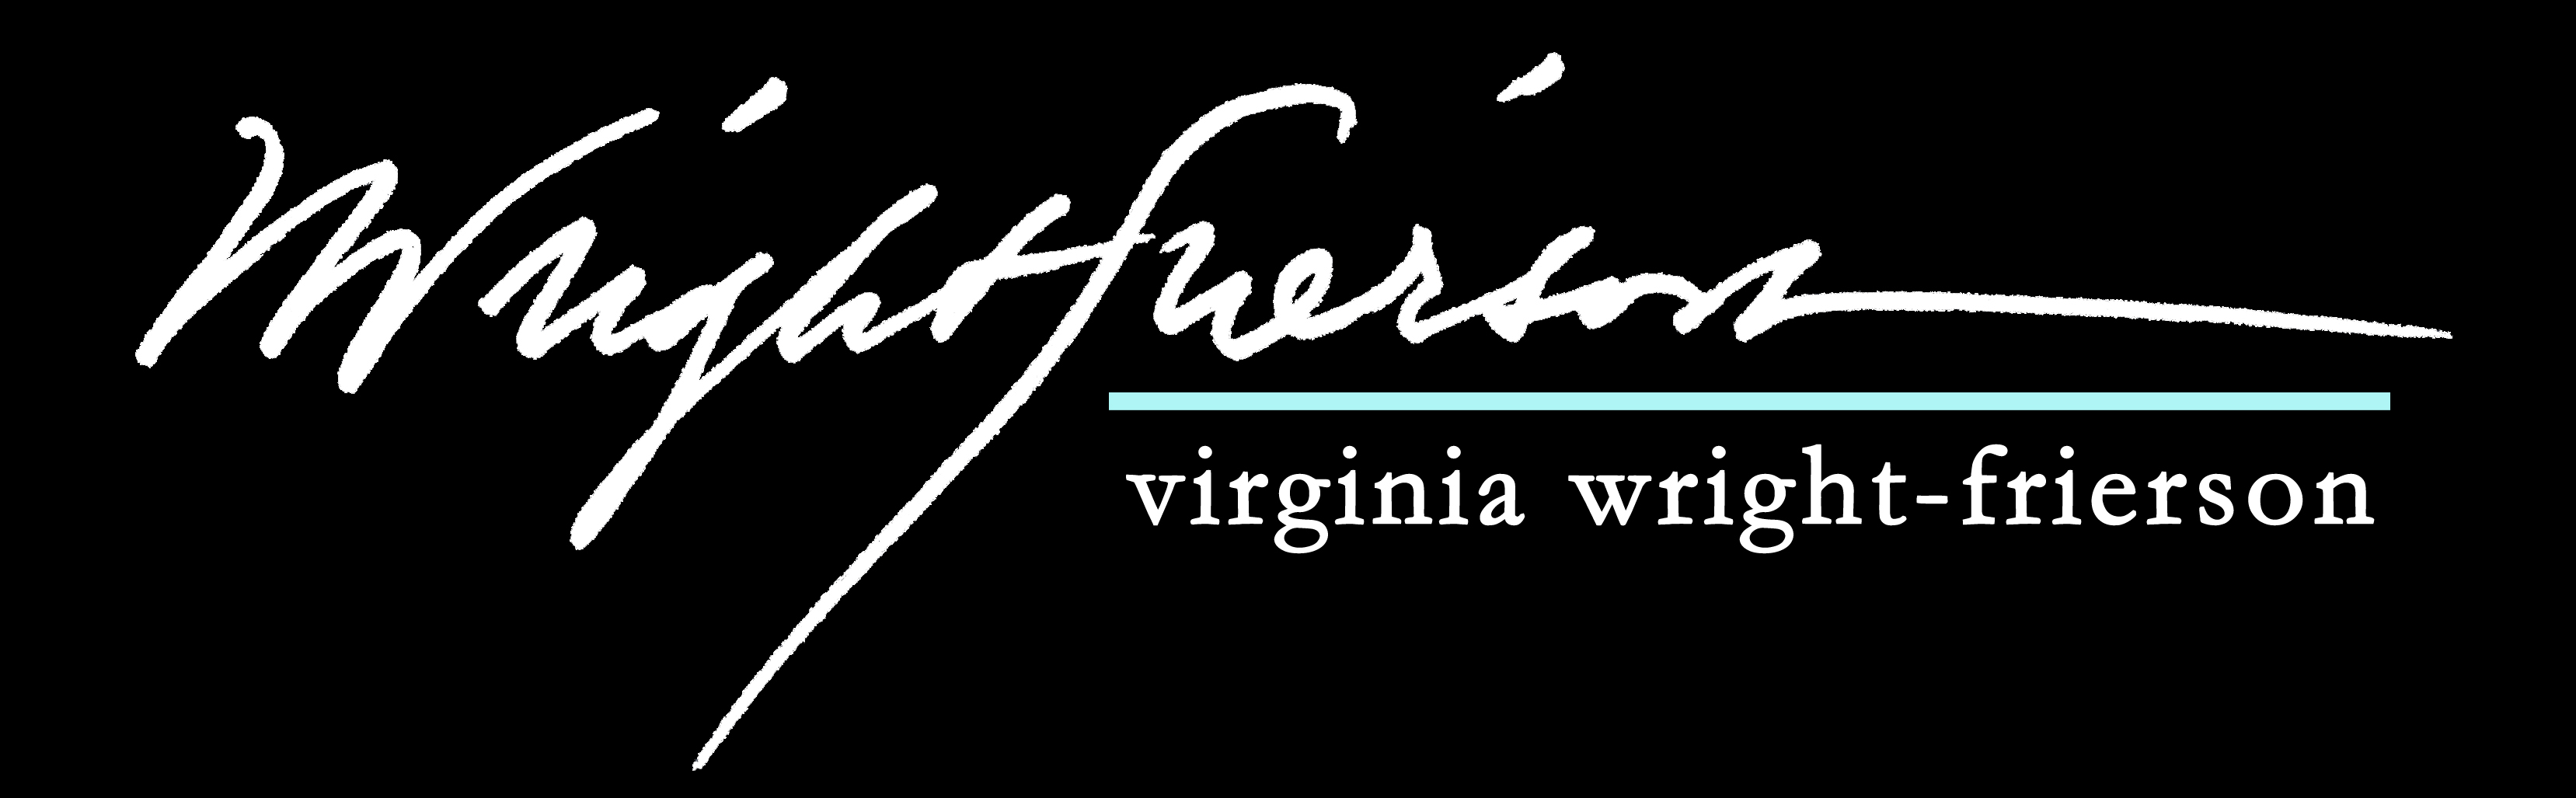 www.virginiawright-frierson.com